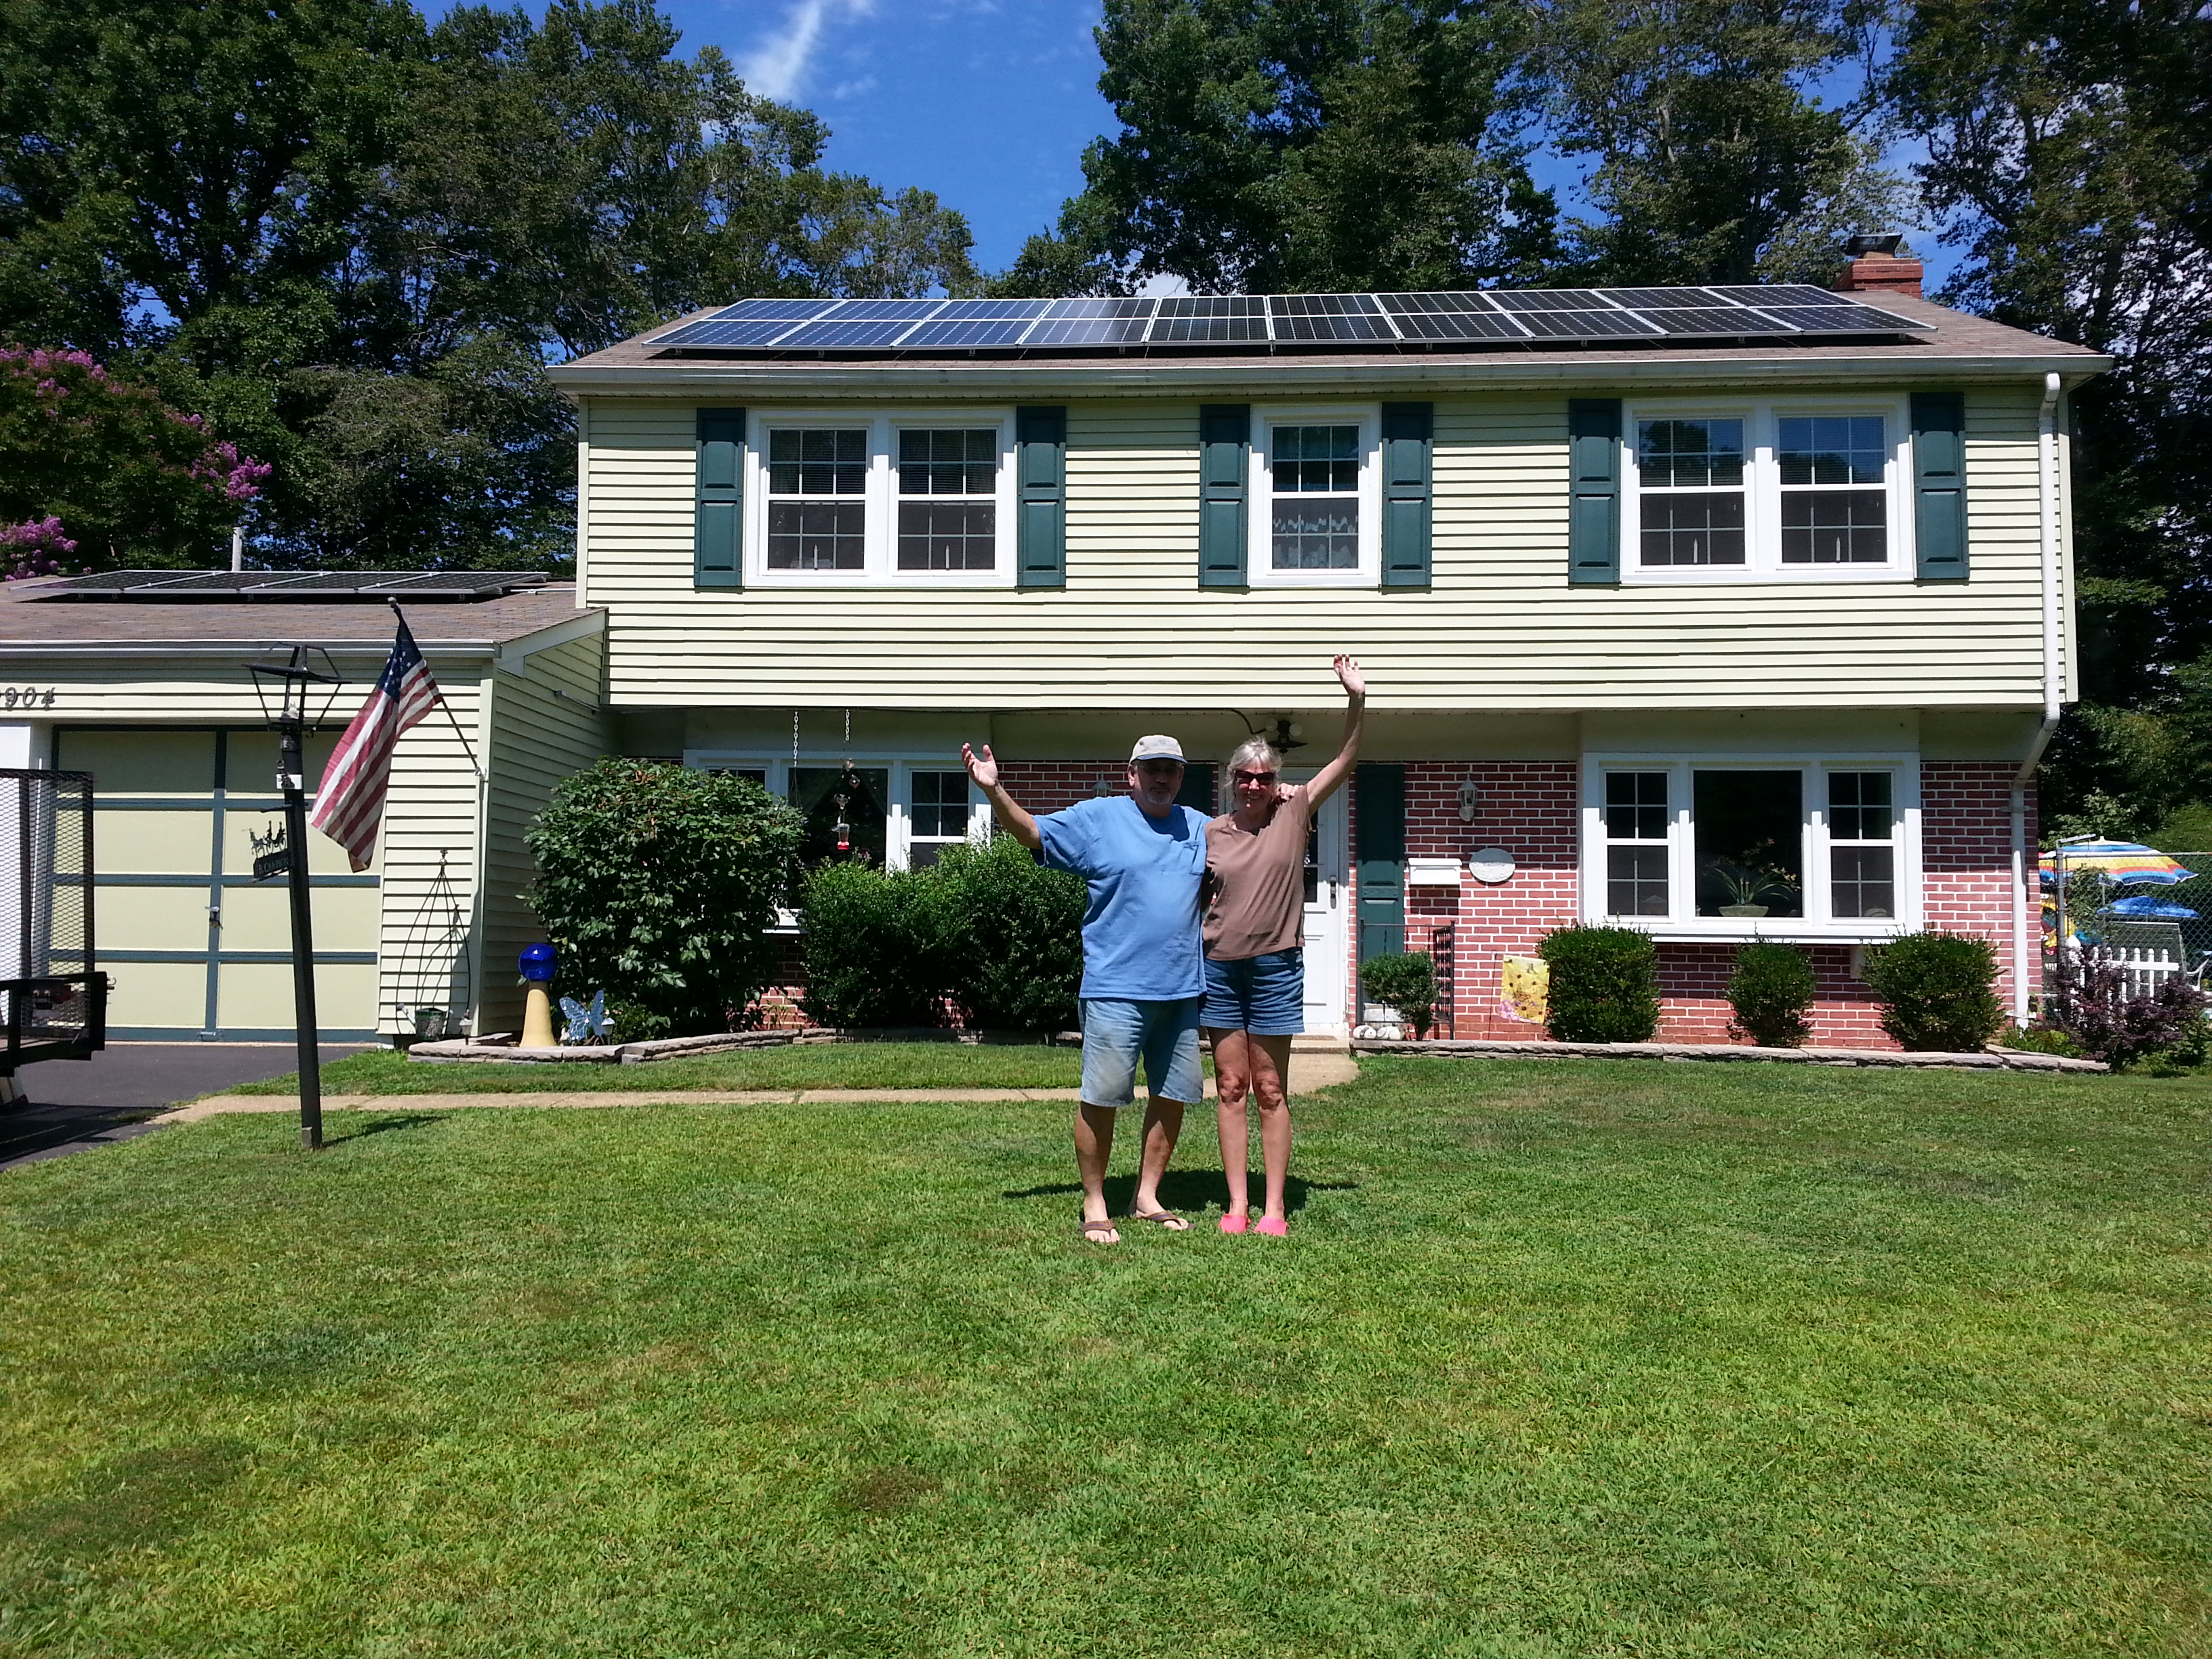 Kelly & Dave Campion with their solar installation